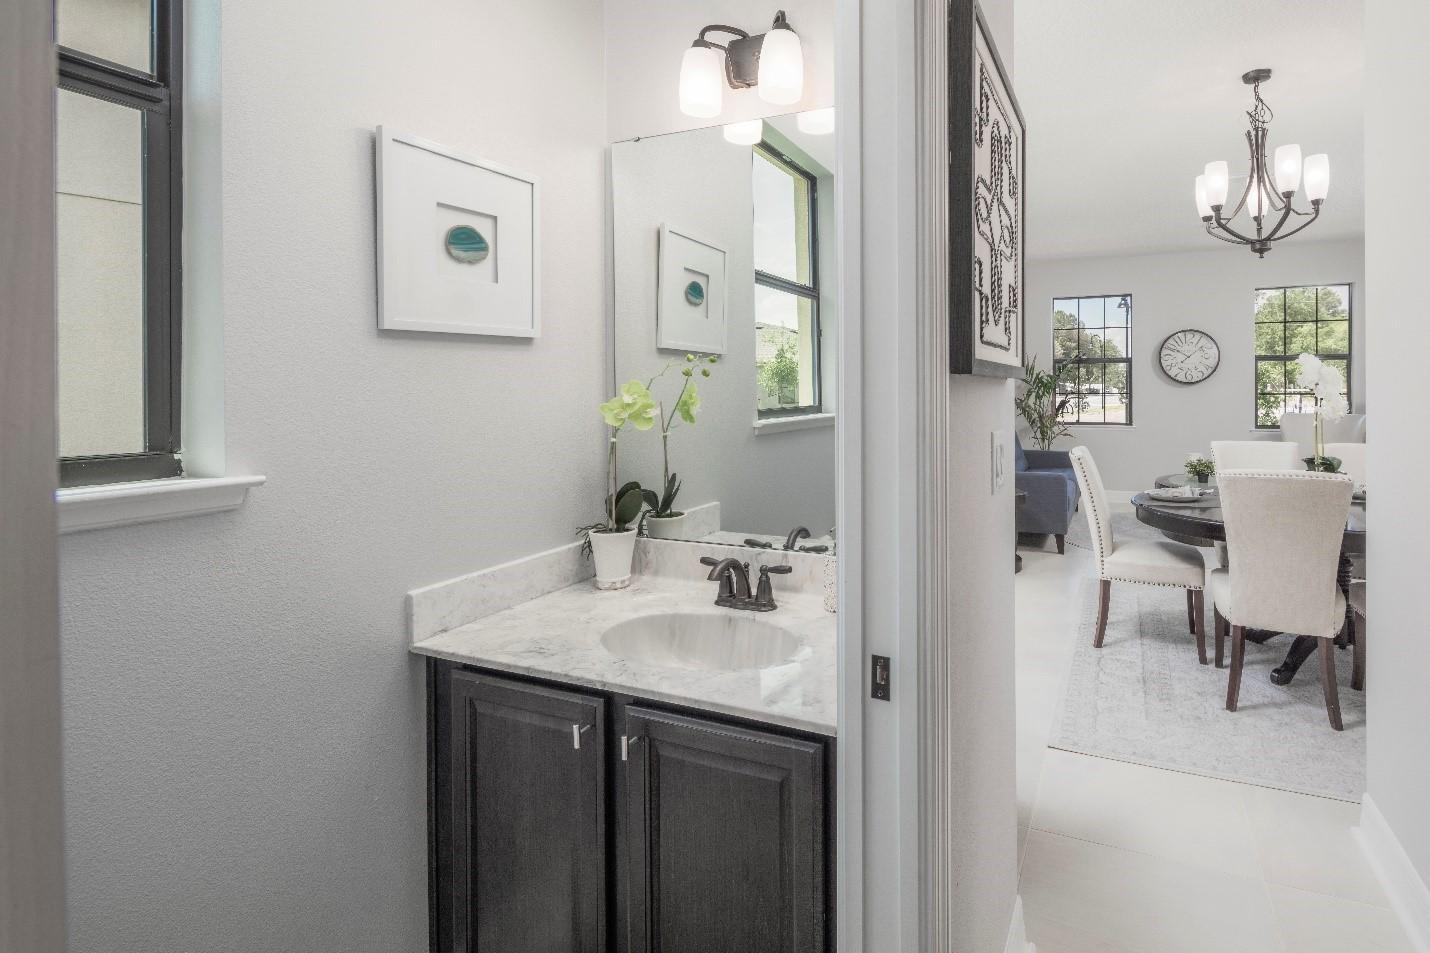 Bathroom featured in the Marbella By Century and Craft Homes in Orlando, FL